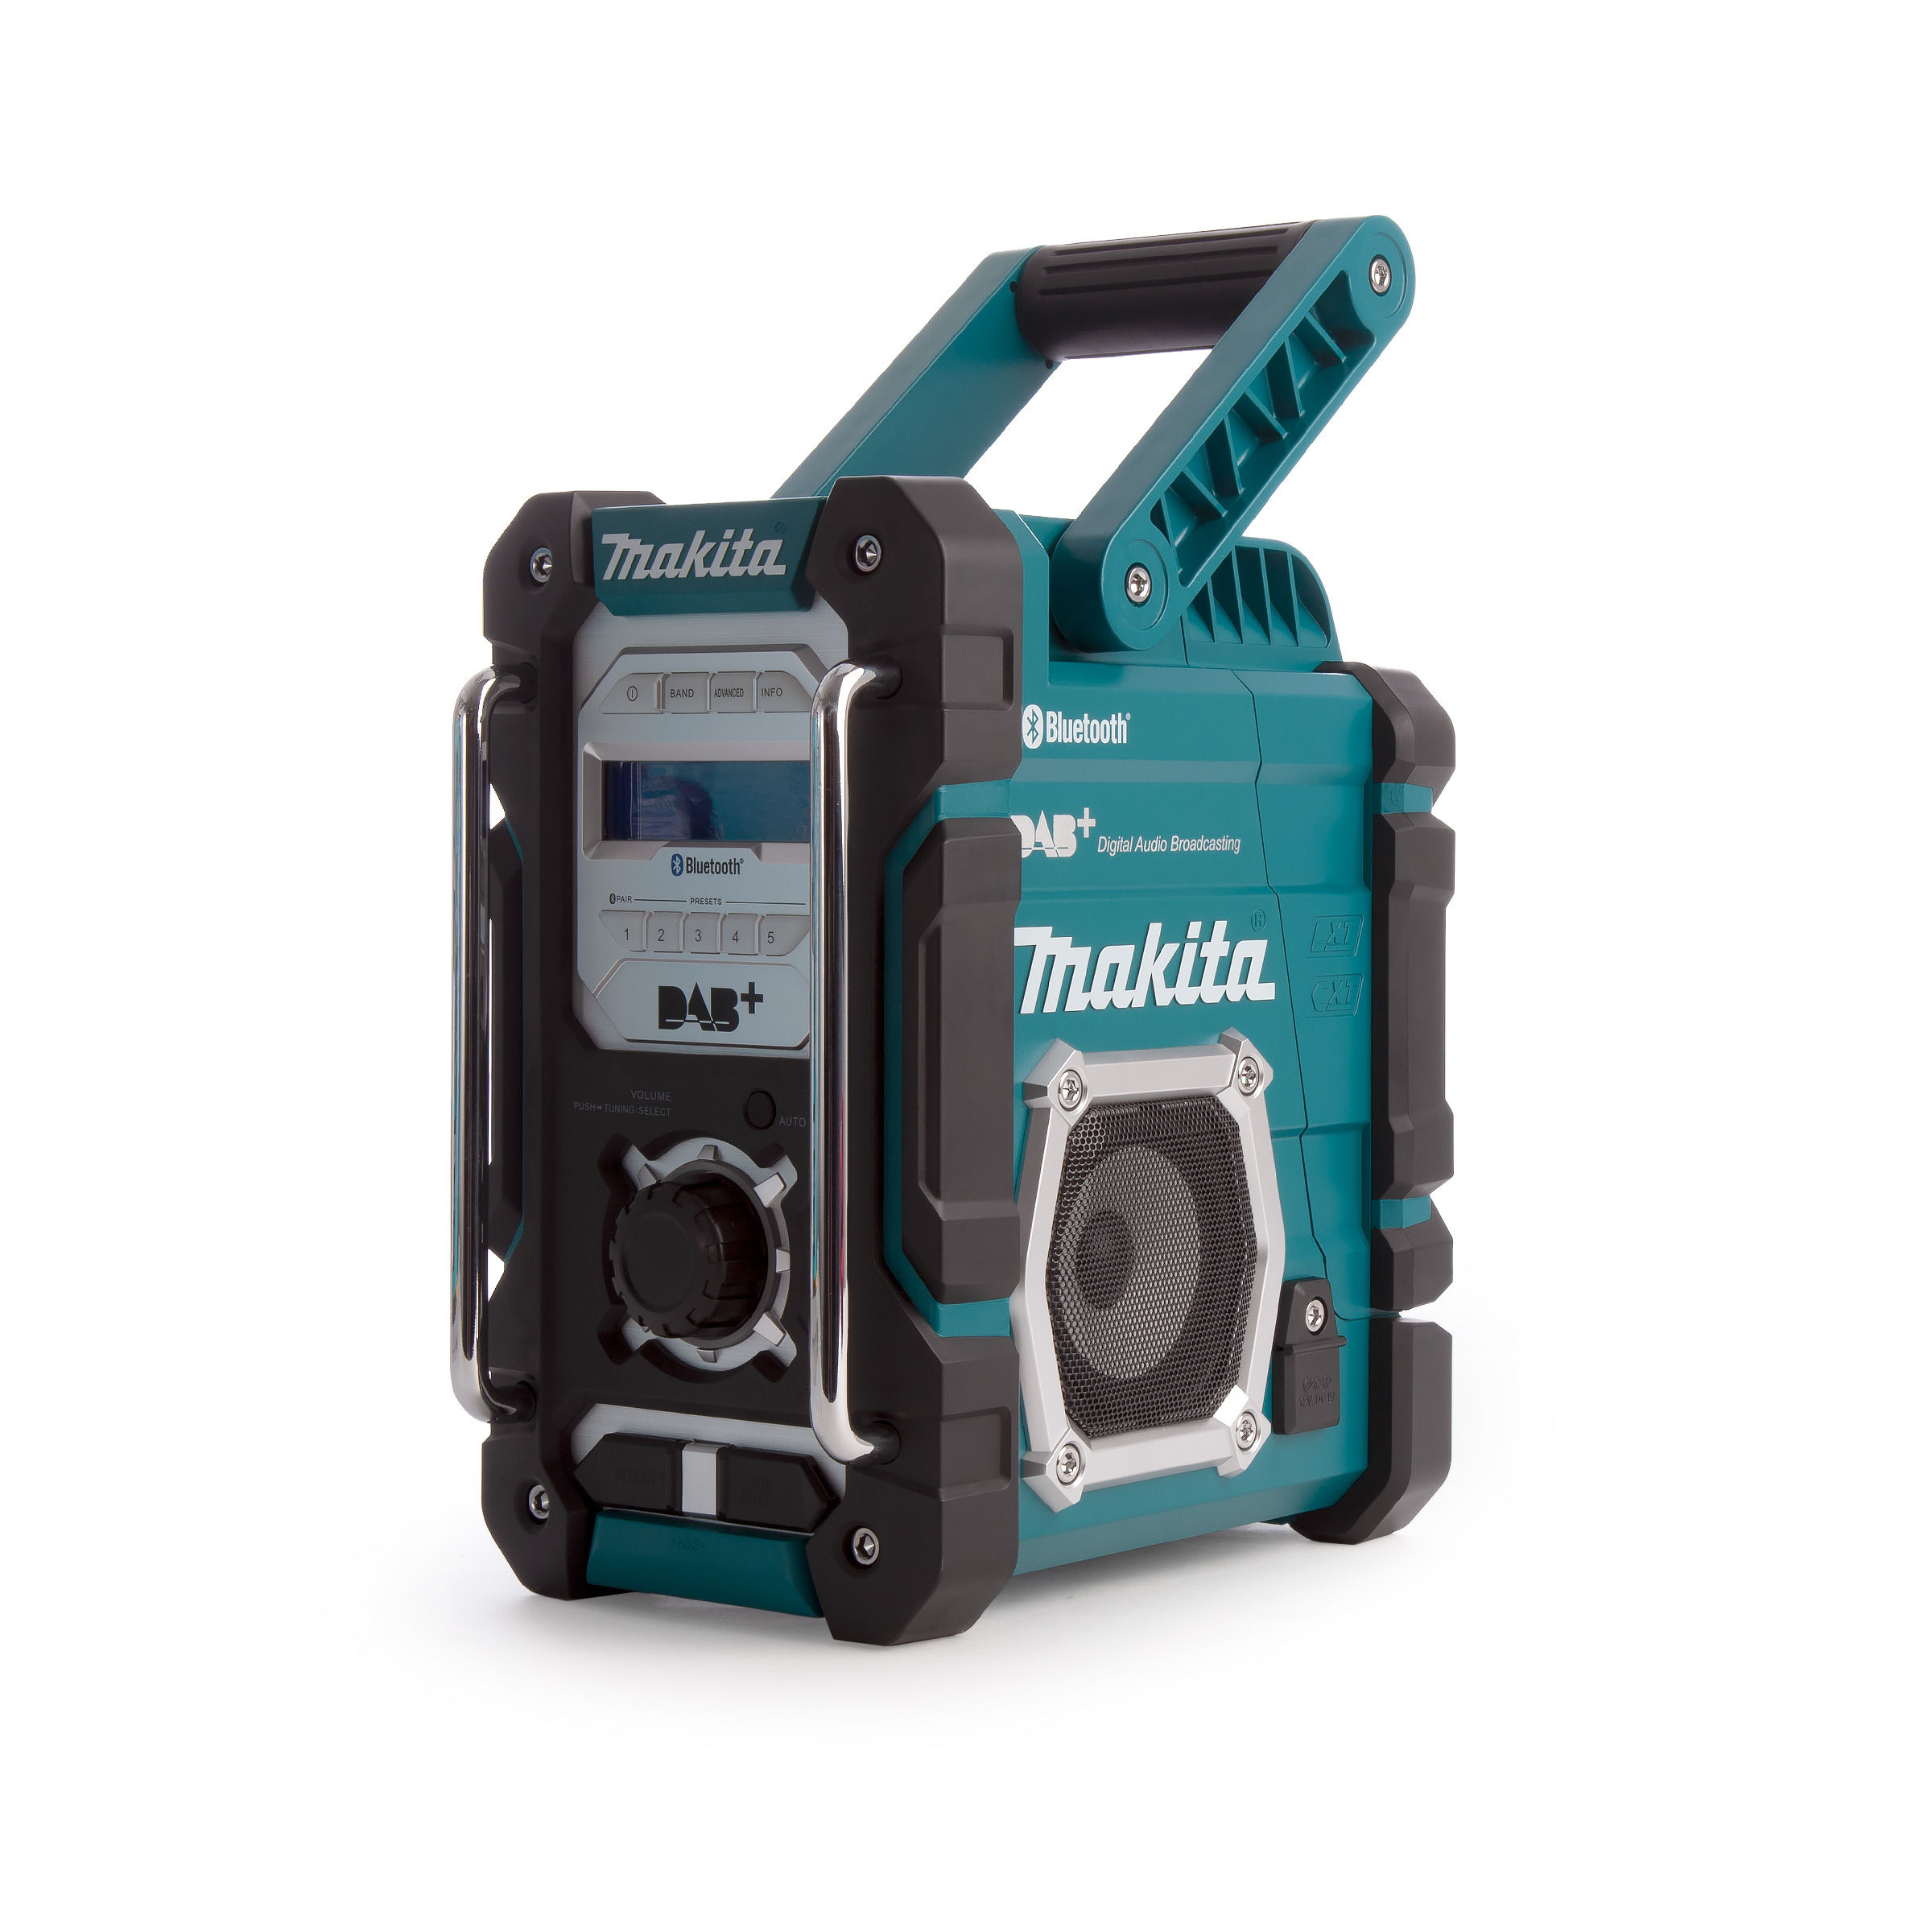 toolstop makita dmr112 7 2v 18v dab dab jobsite radio. Black Bedroom Furniture Sets. Home Design Ideas